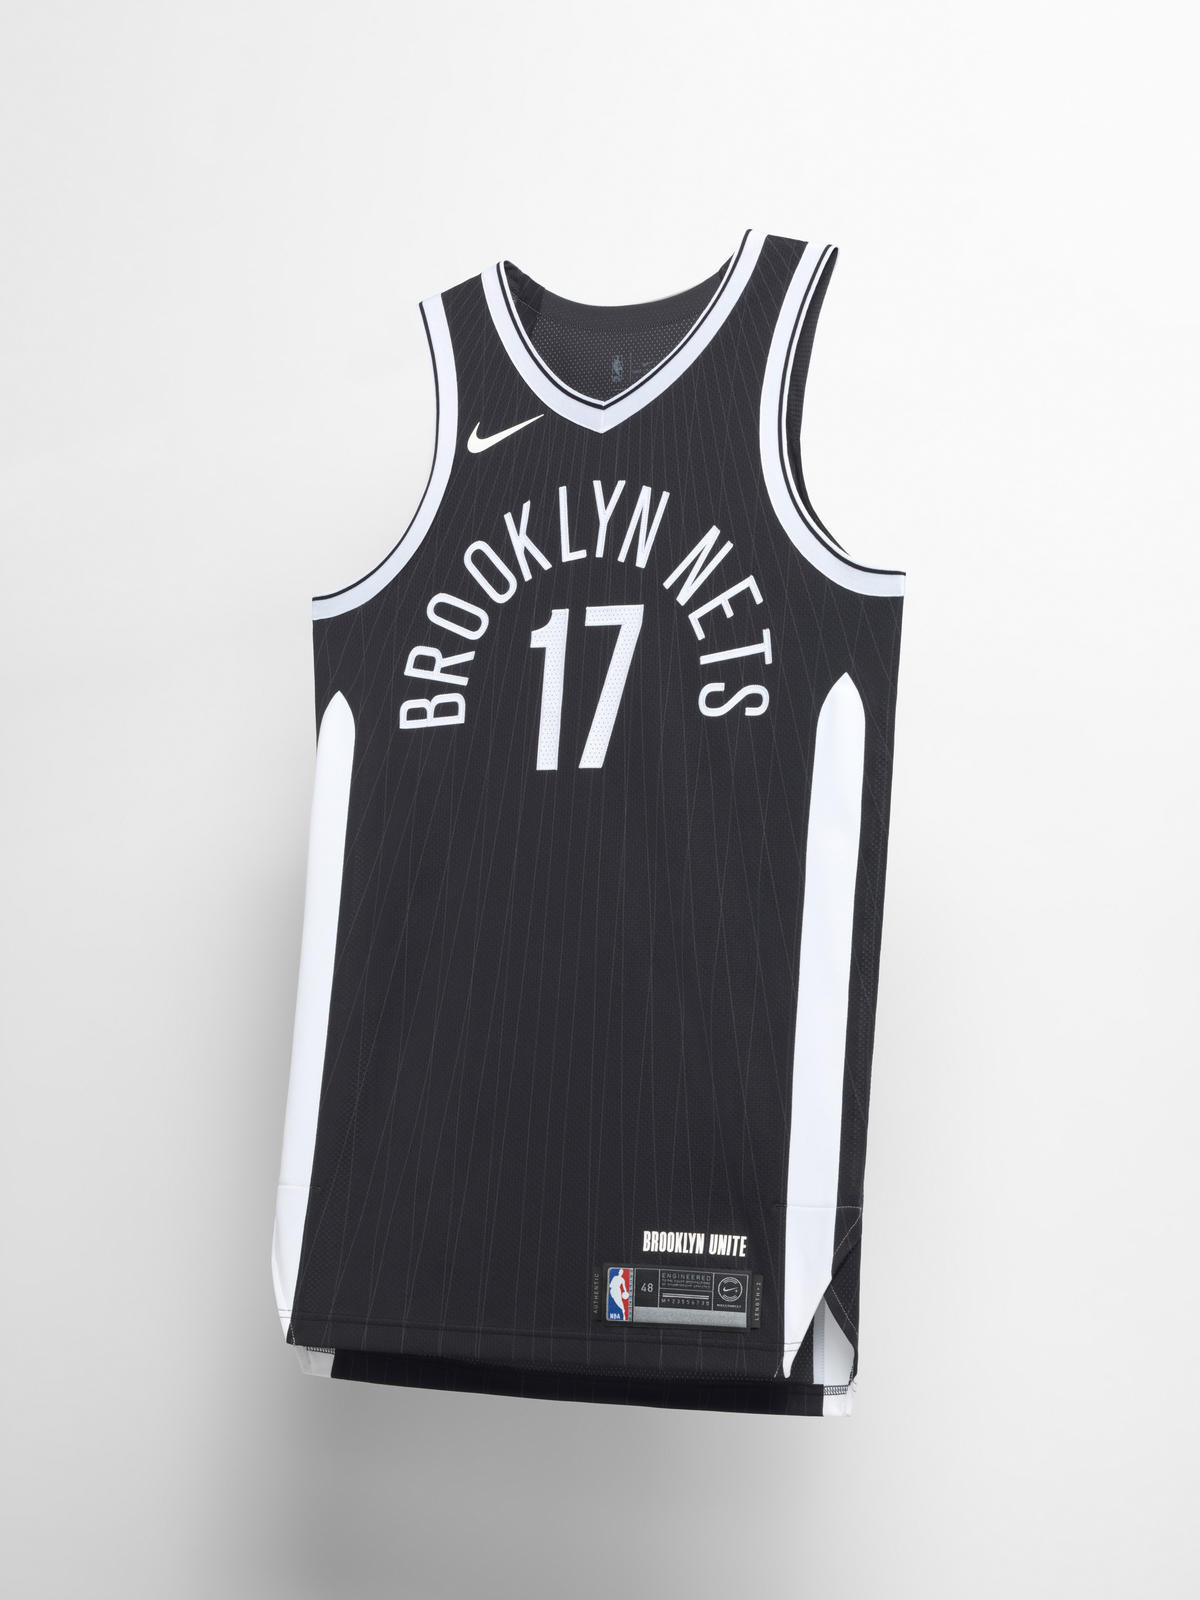 Nike NBA City Edition Uniform - Nike News 02e310268